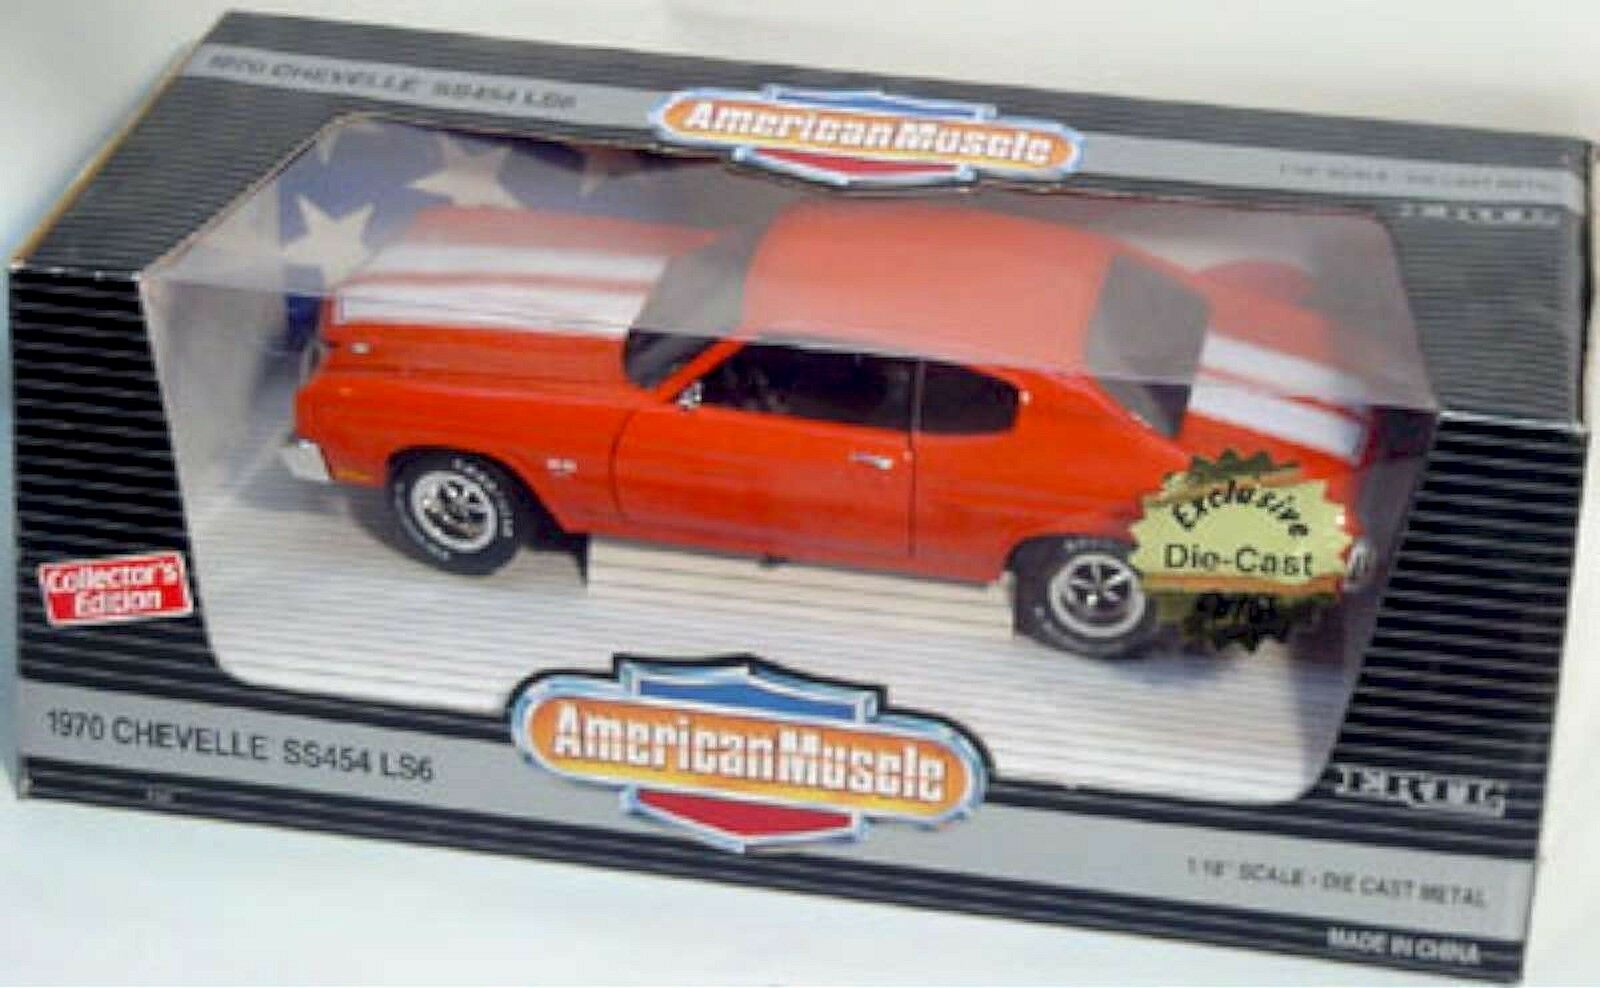 Ertl 1 18 1970 Chevy Chevelle Ss 454 LS6 arancia 7147 American Muscle Sellado'70